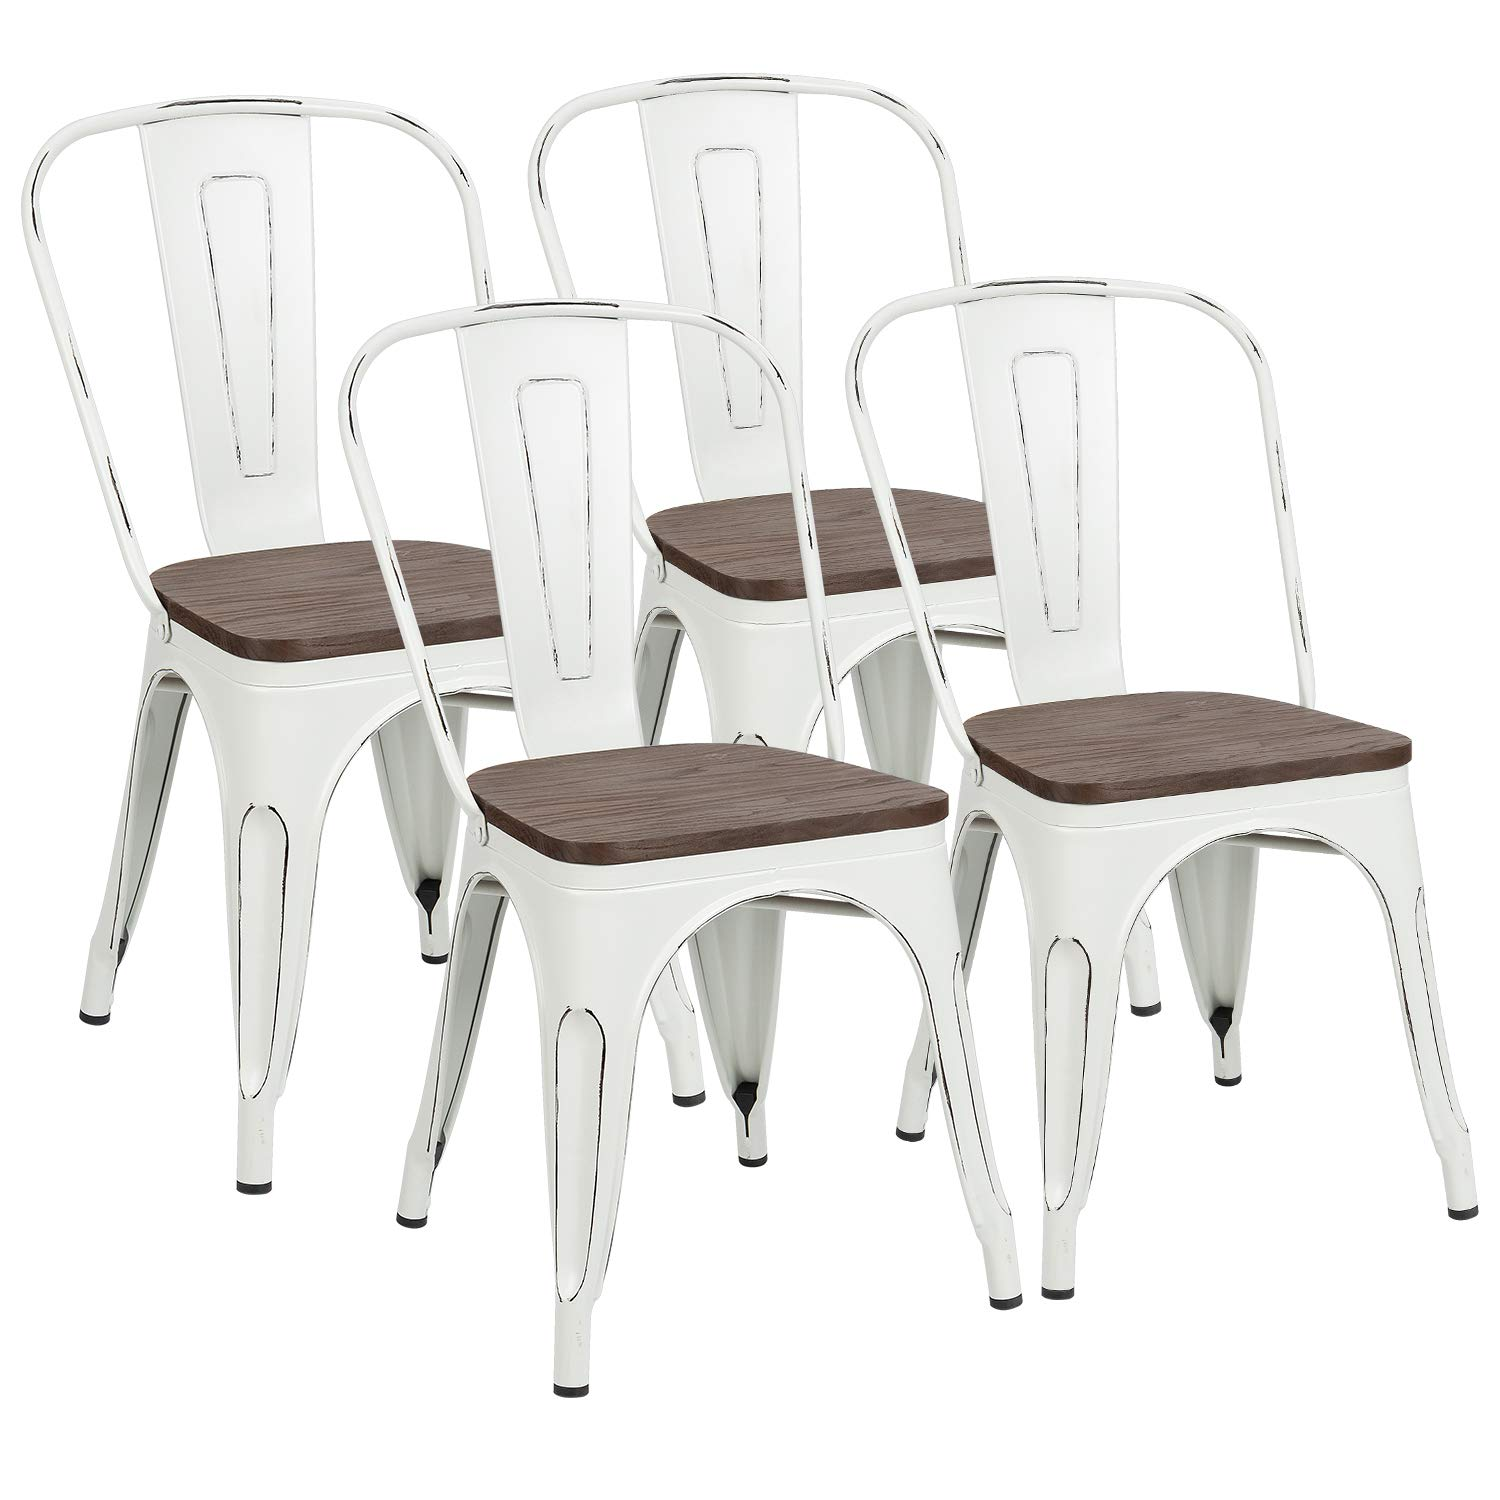 Metal Dining Chairs with Wood Seat, Tolix Style Indoor-Outdoor Stackable Industrial Chair with Back Set of 4 for Kitchen, Dining Room, Bistro and Cafe (White)